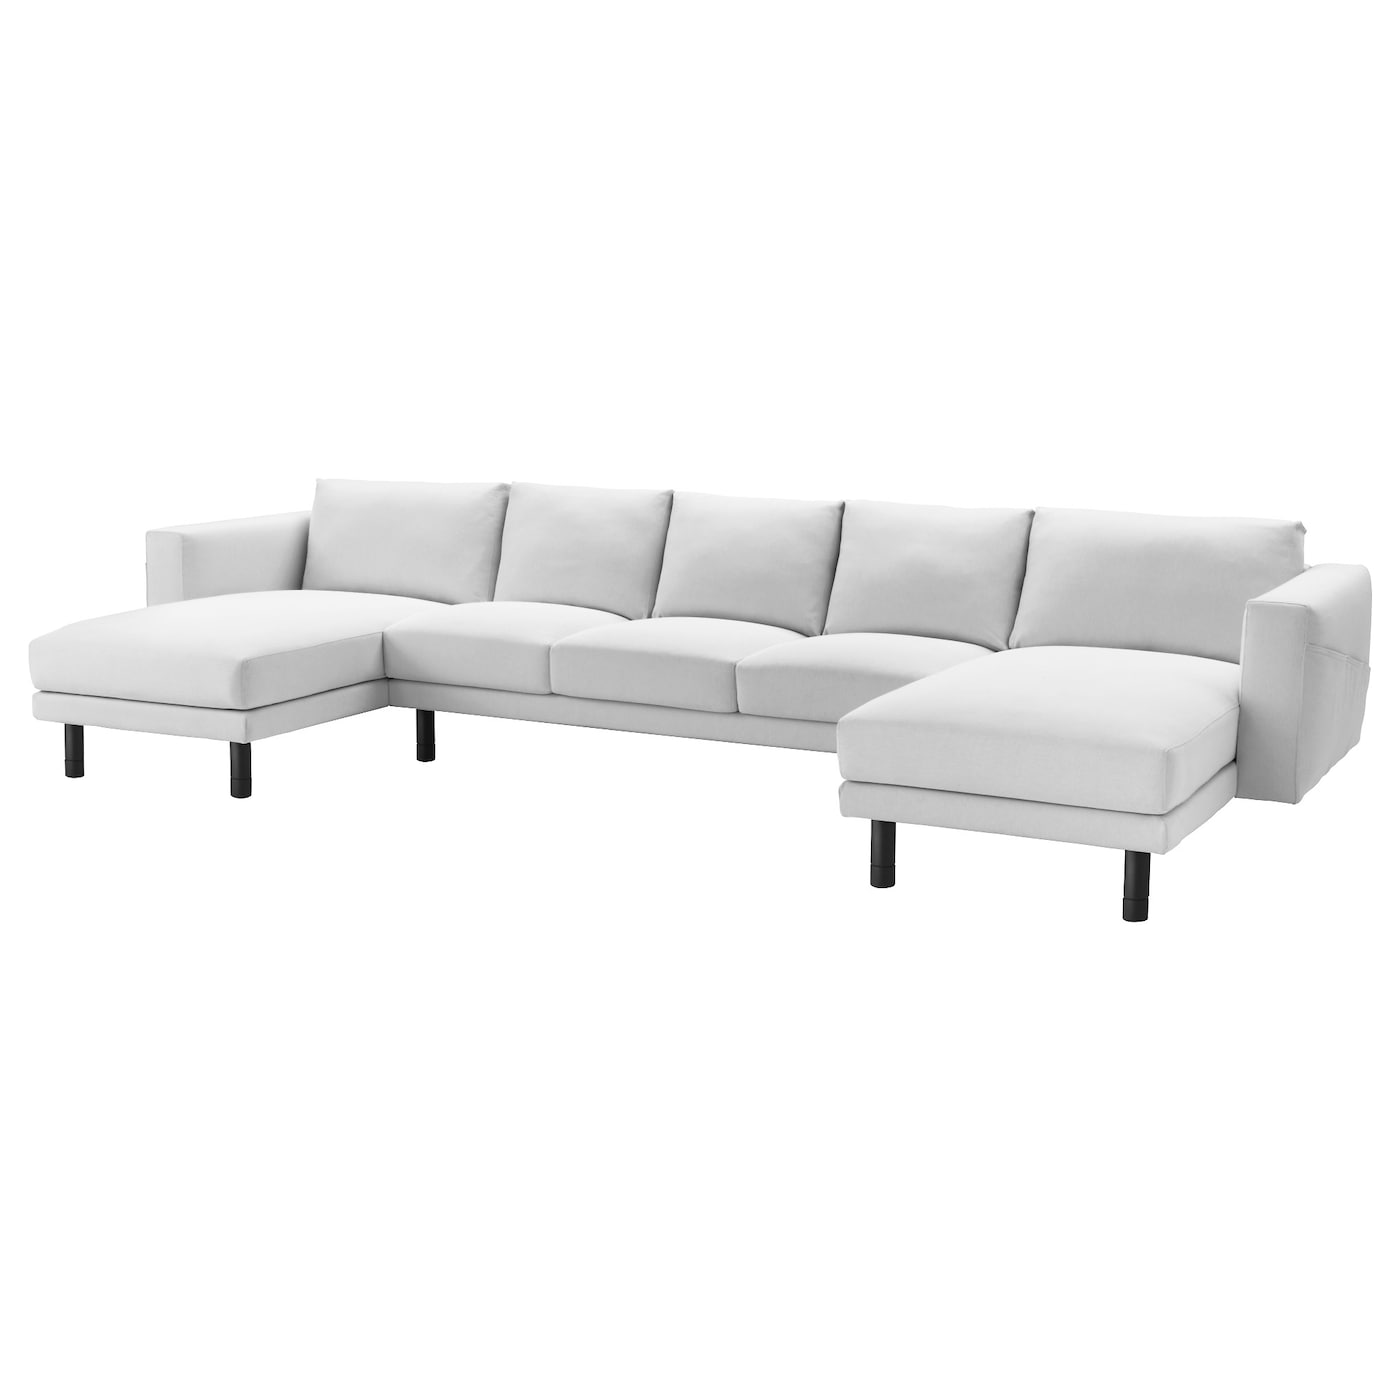 Norsborg 3 seat sofa with 2 chaise longues finnsta white for 2 5 seater sofa with chaise